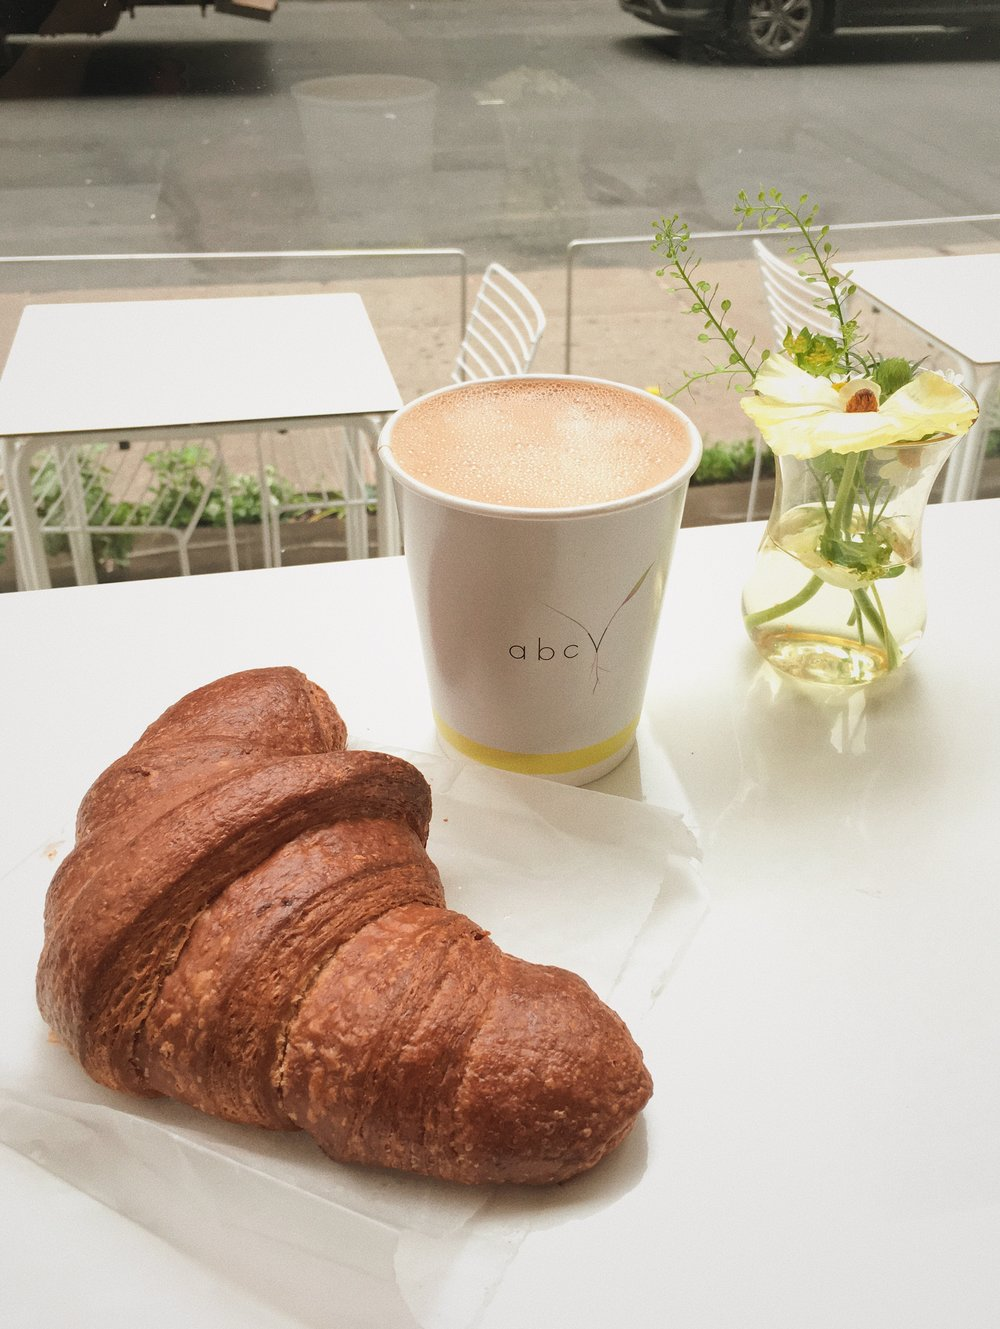 Plain Vegan Croissant with Almond Cappuccino